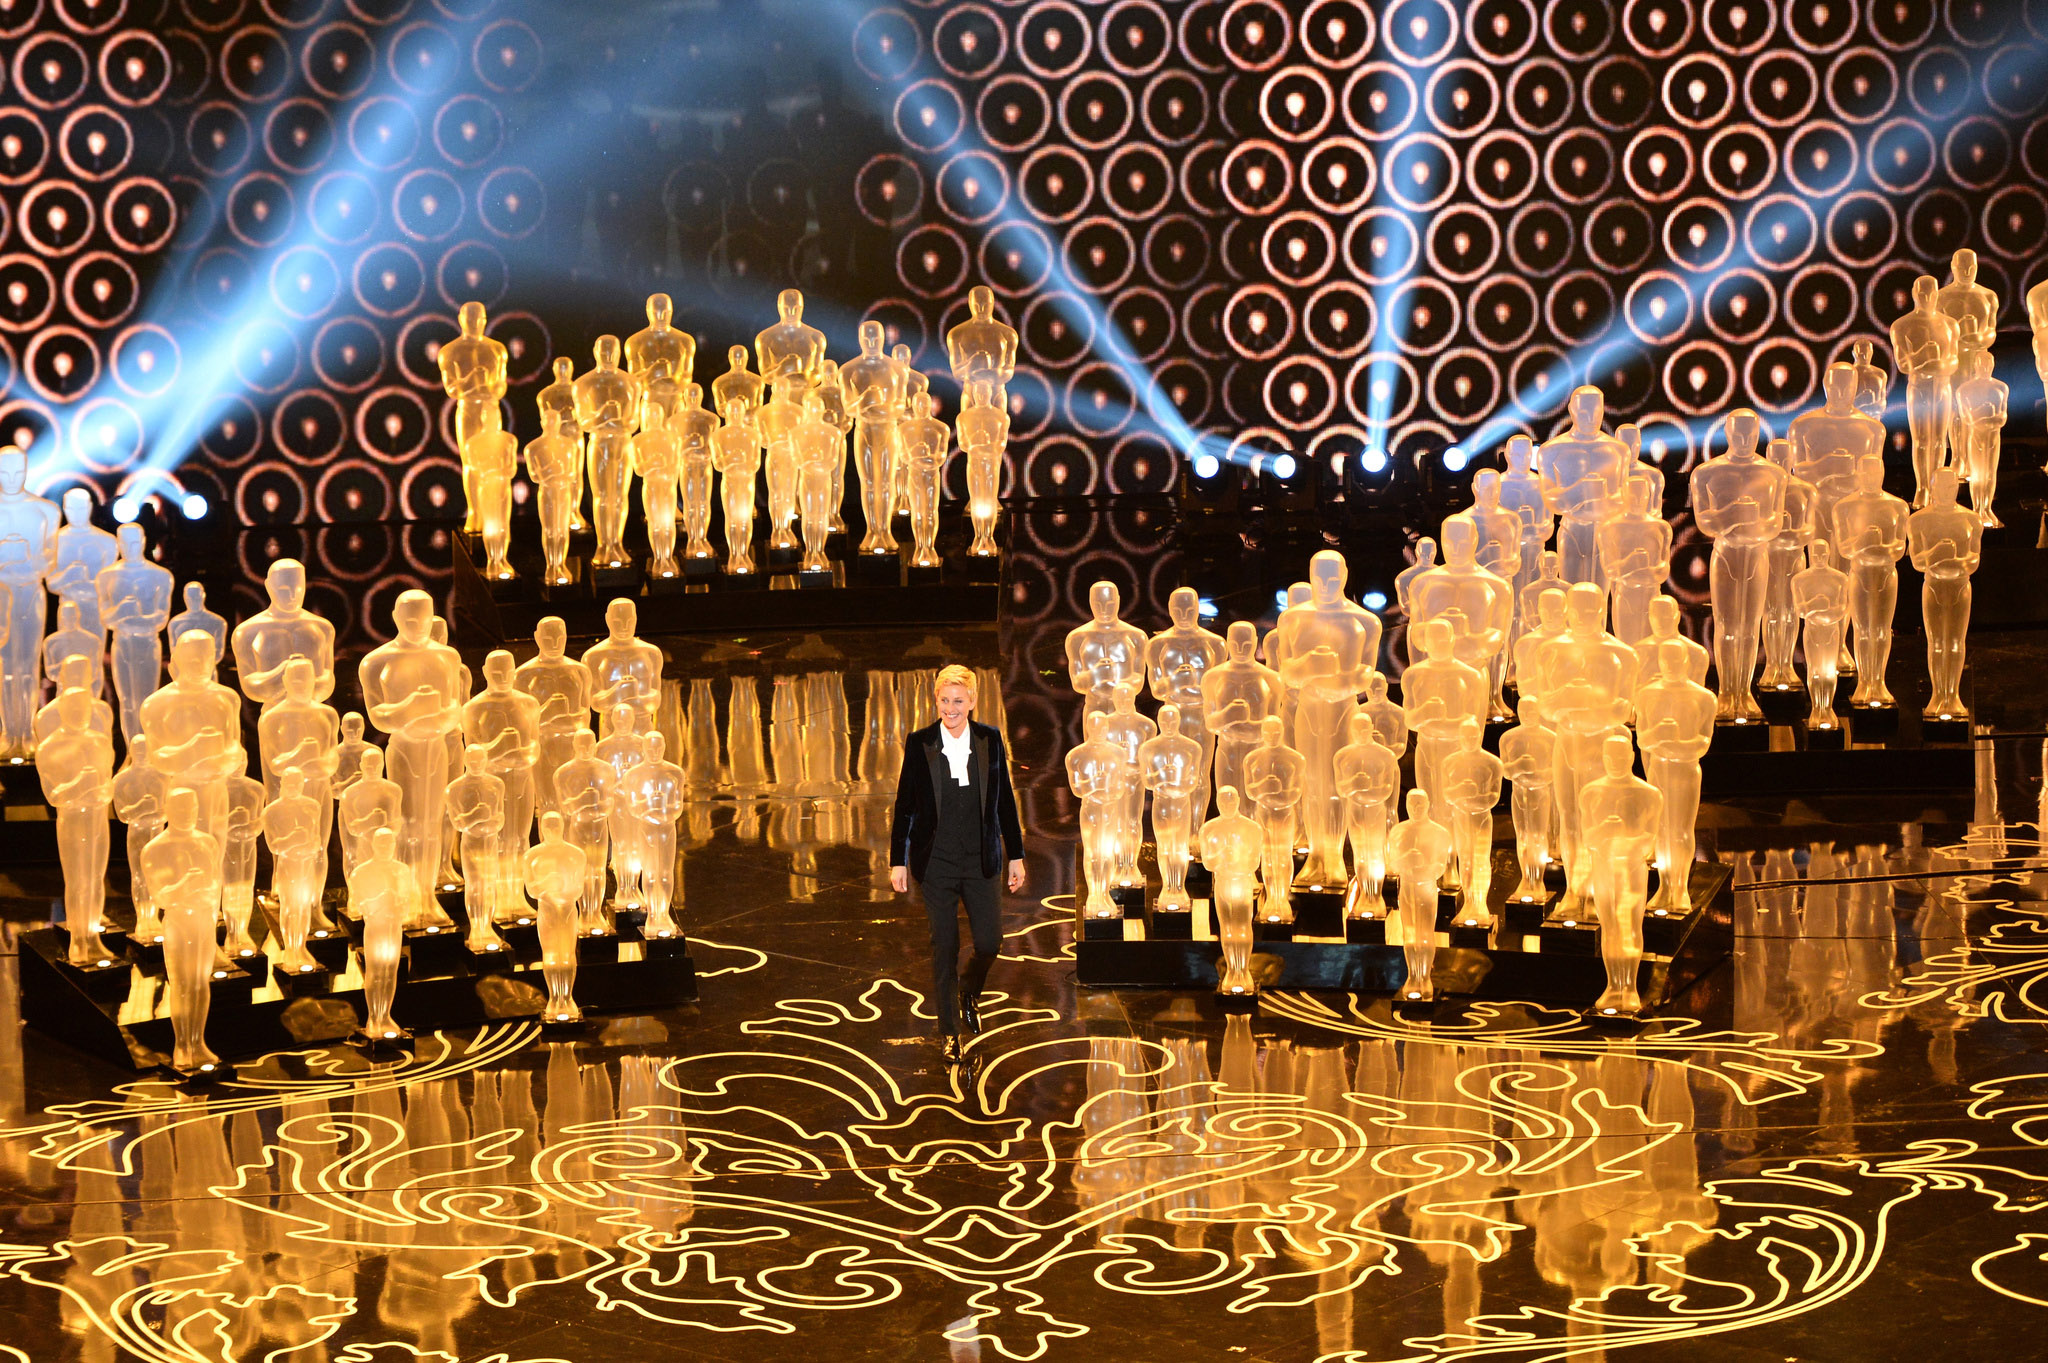 86th Annual Academy Awards - Show